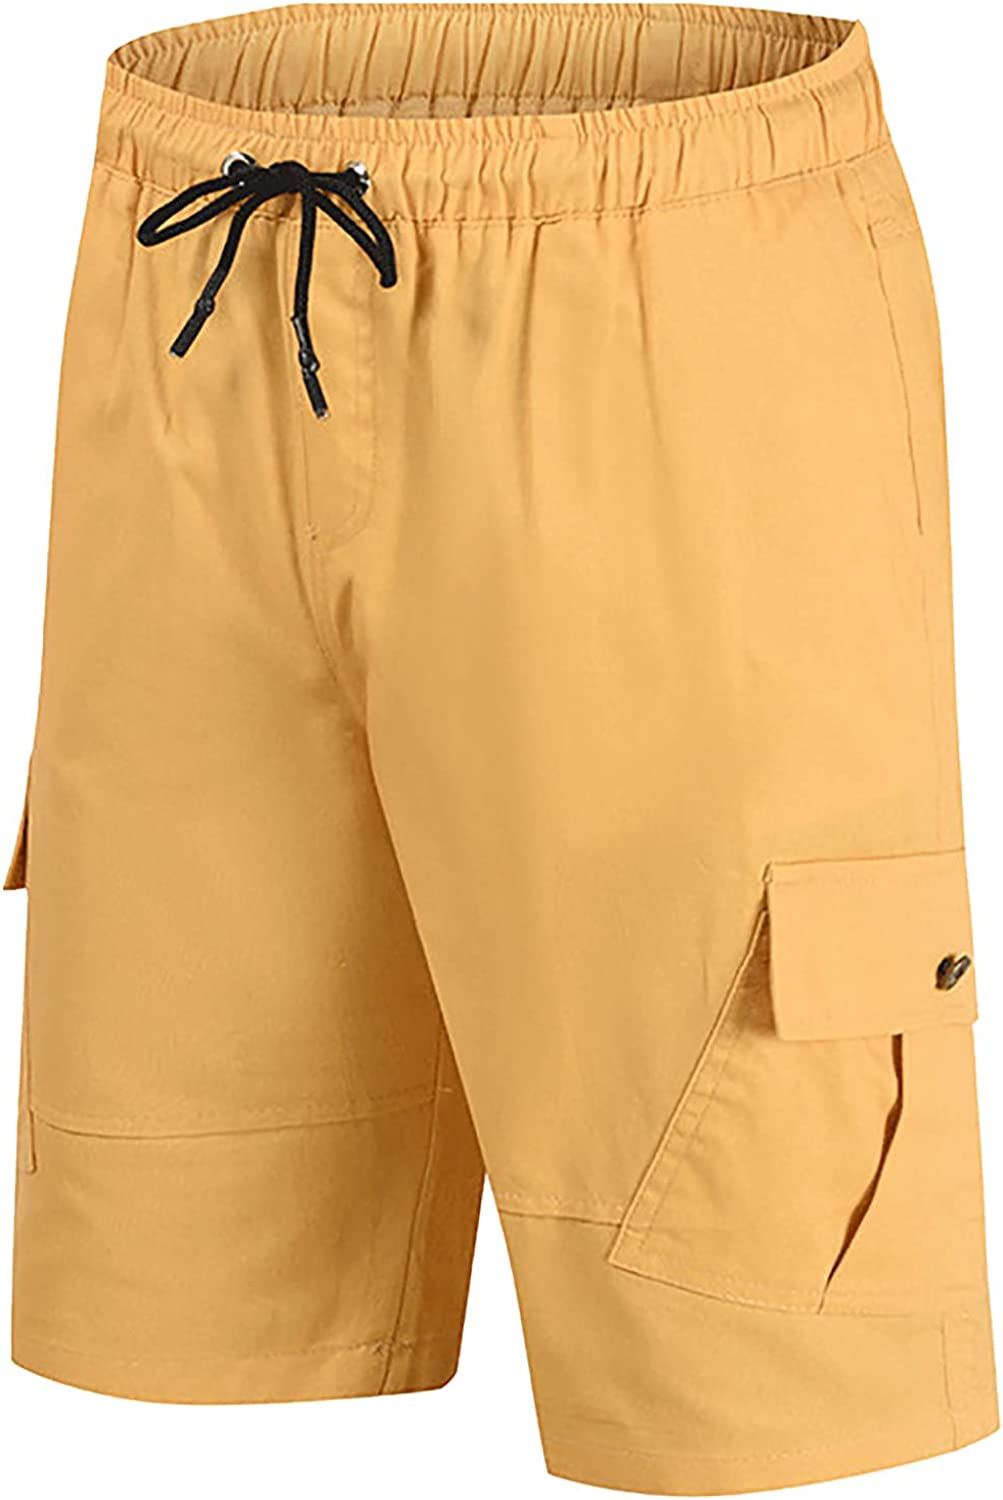 Summer Cargo Shorts for Men Casual Basic Loose Fit Overalls Below Knee Work Hiker Big and Tall Cropped Pants